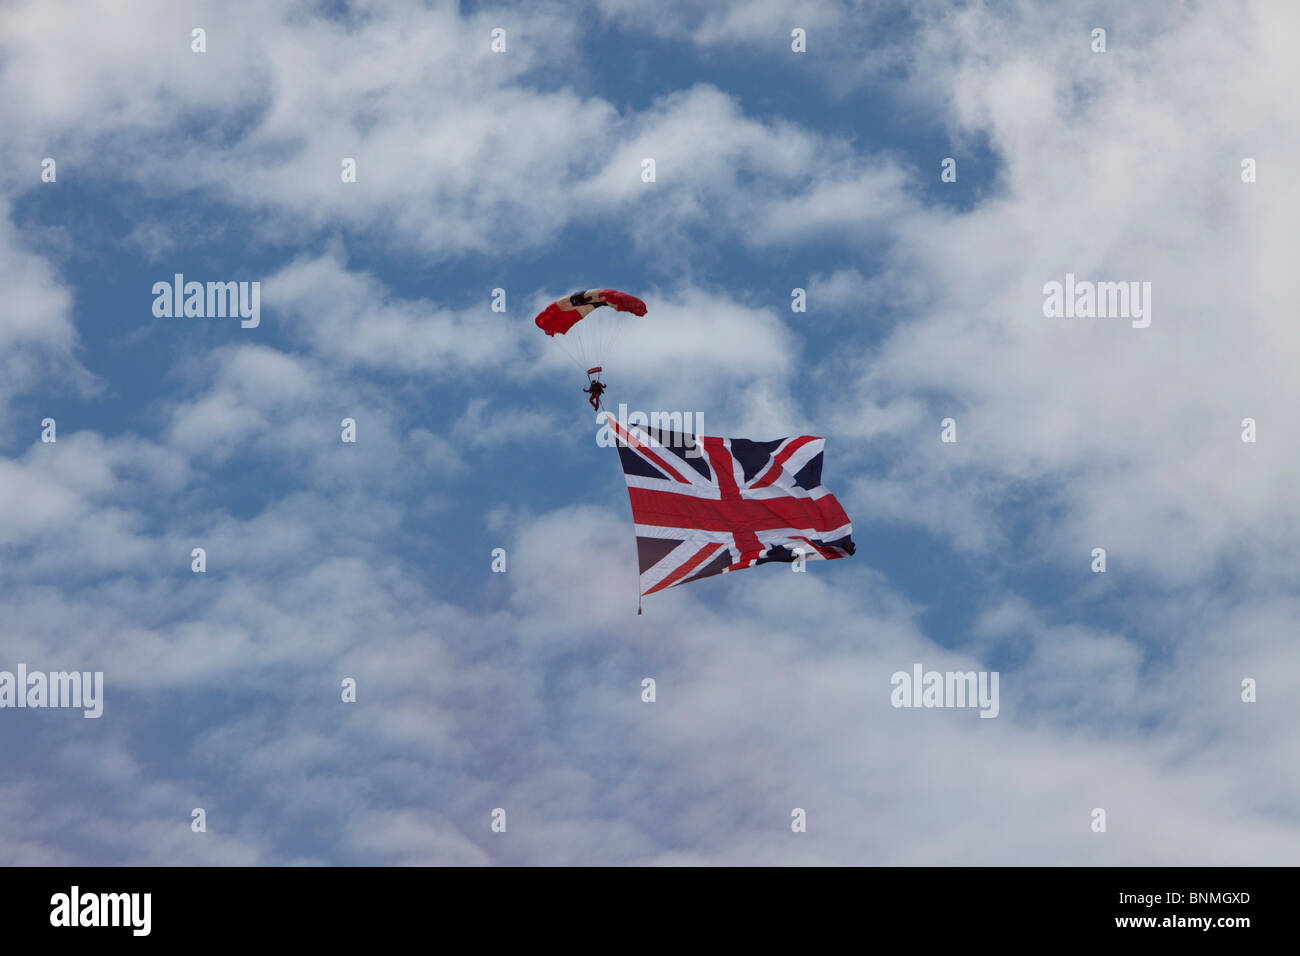 Parachute Regiment Free Fall team red devils flying a union jack. Farnborough air show 2010 uk. - Stock Image